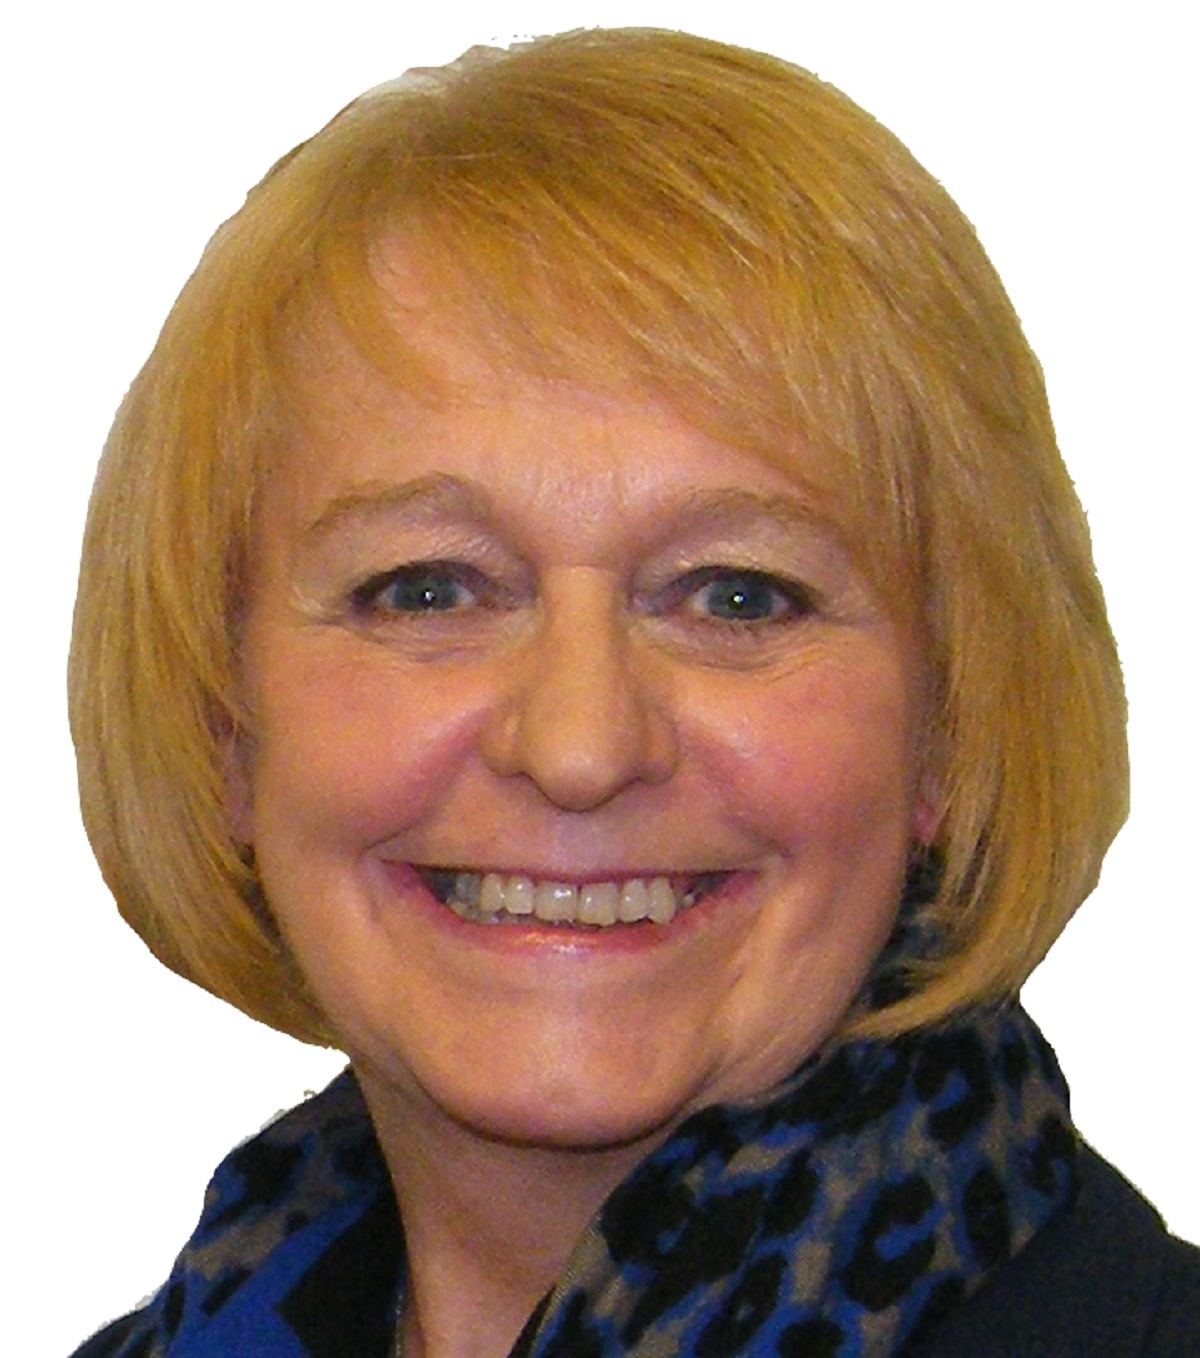 Pam Bradbury is aiming to bring Dudley people's views to the table in debate about bourough health and social care